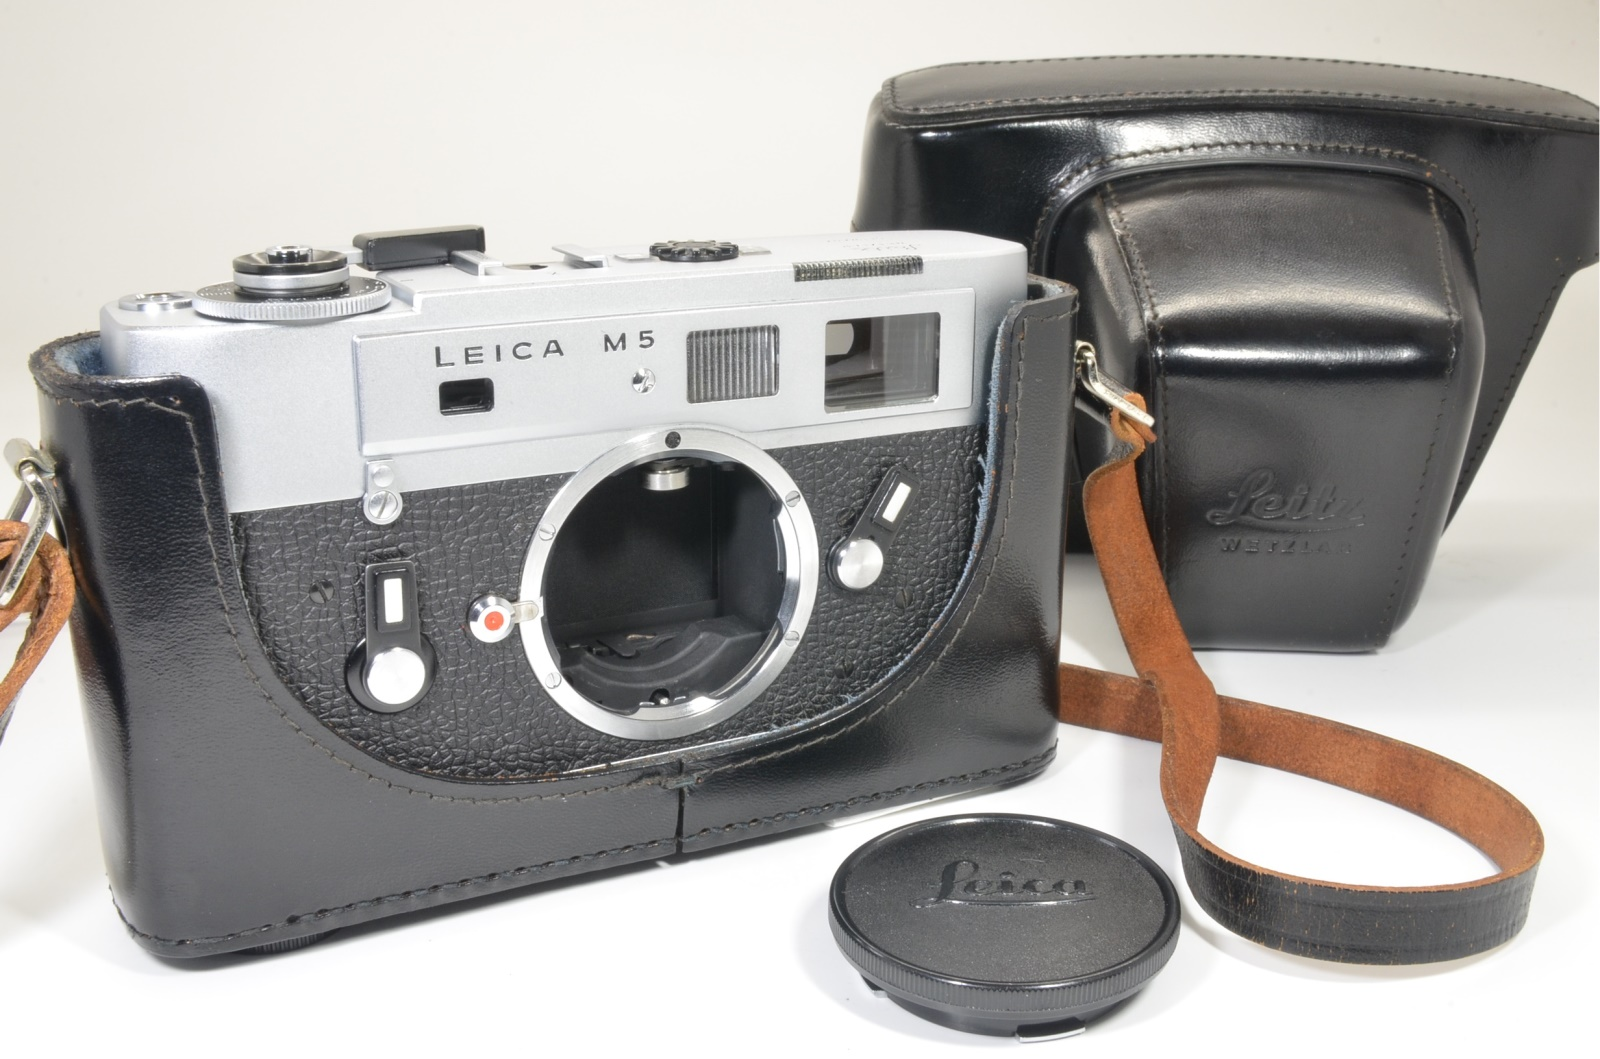 leica m5 silver chrome 3 lug s/n 1362096 year 1973 shooting tested